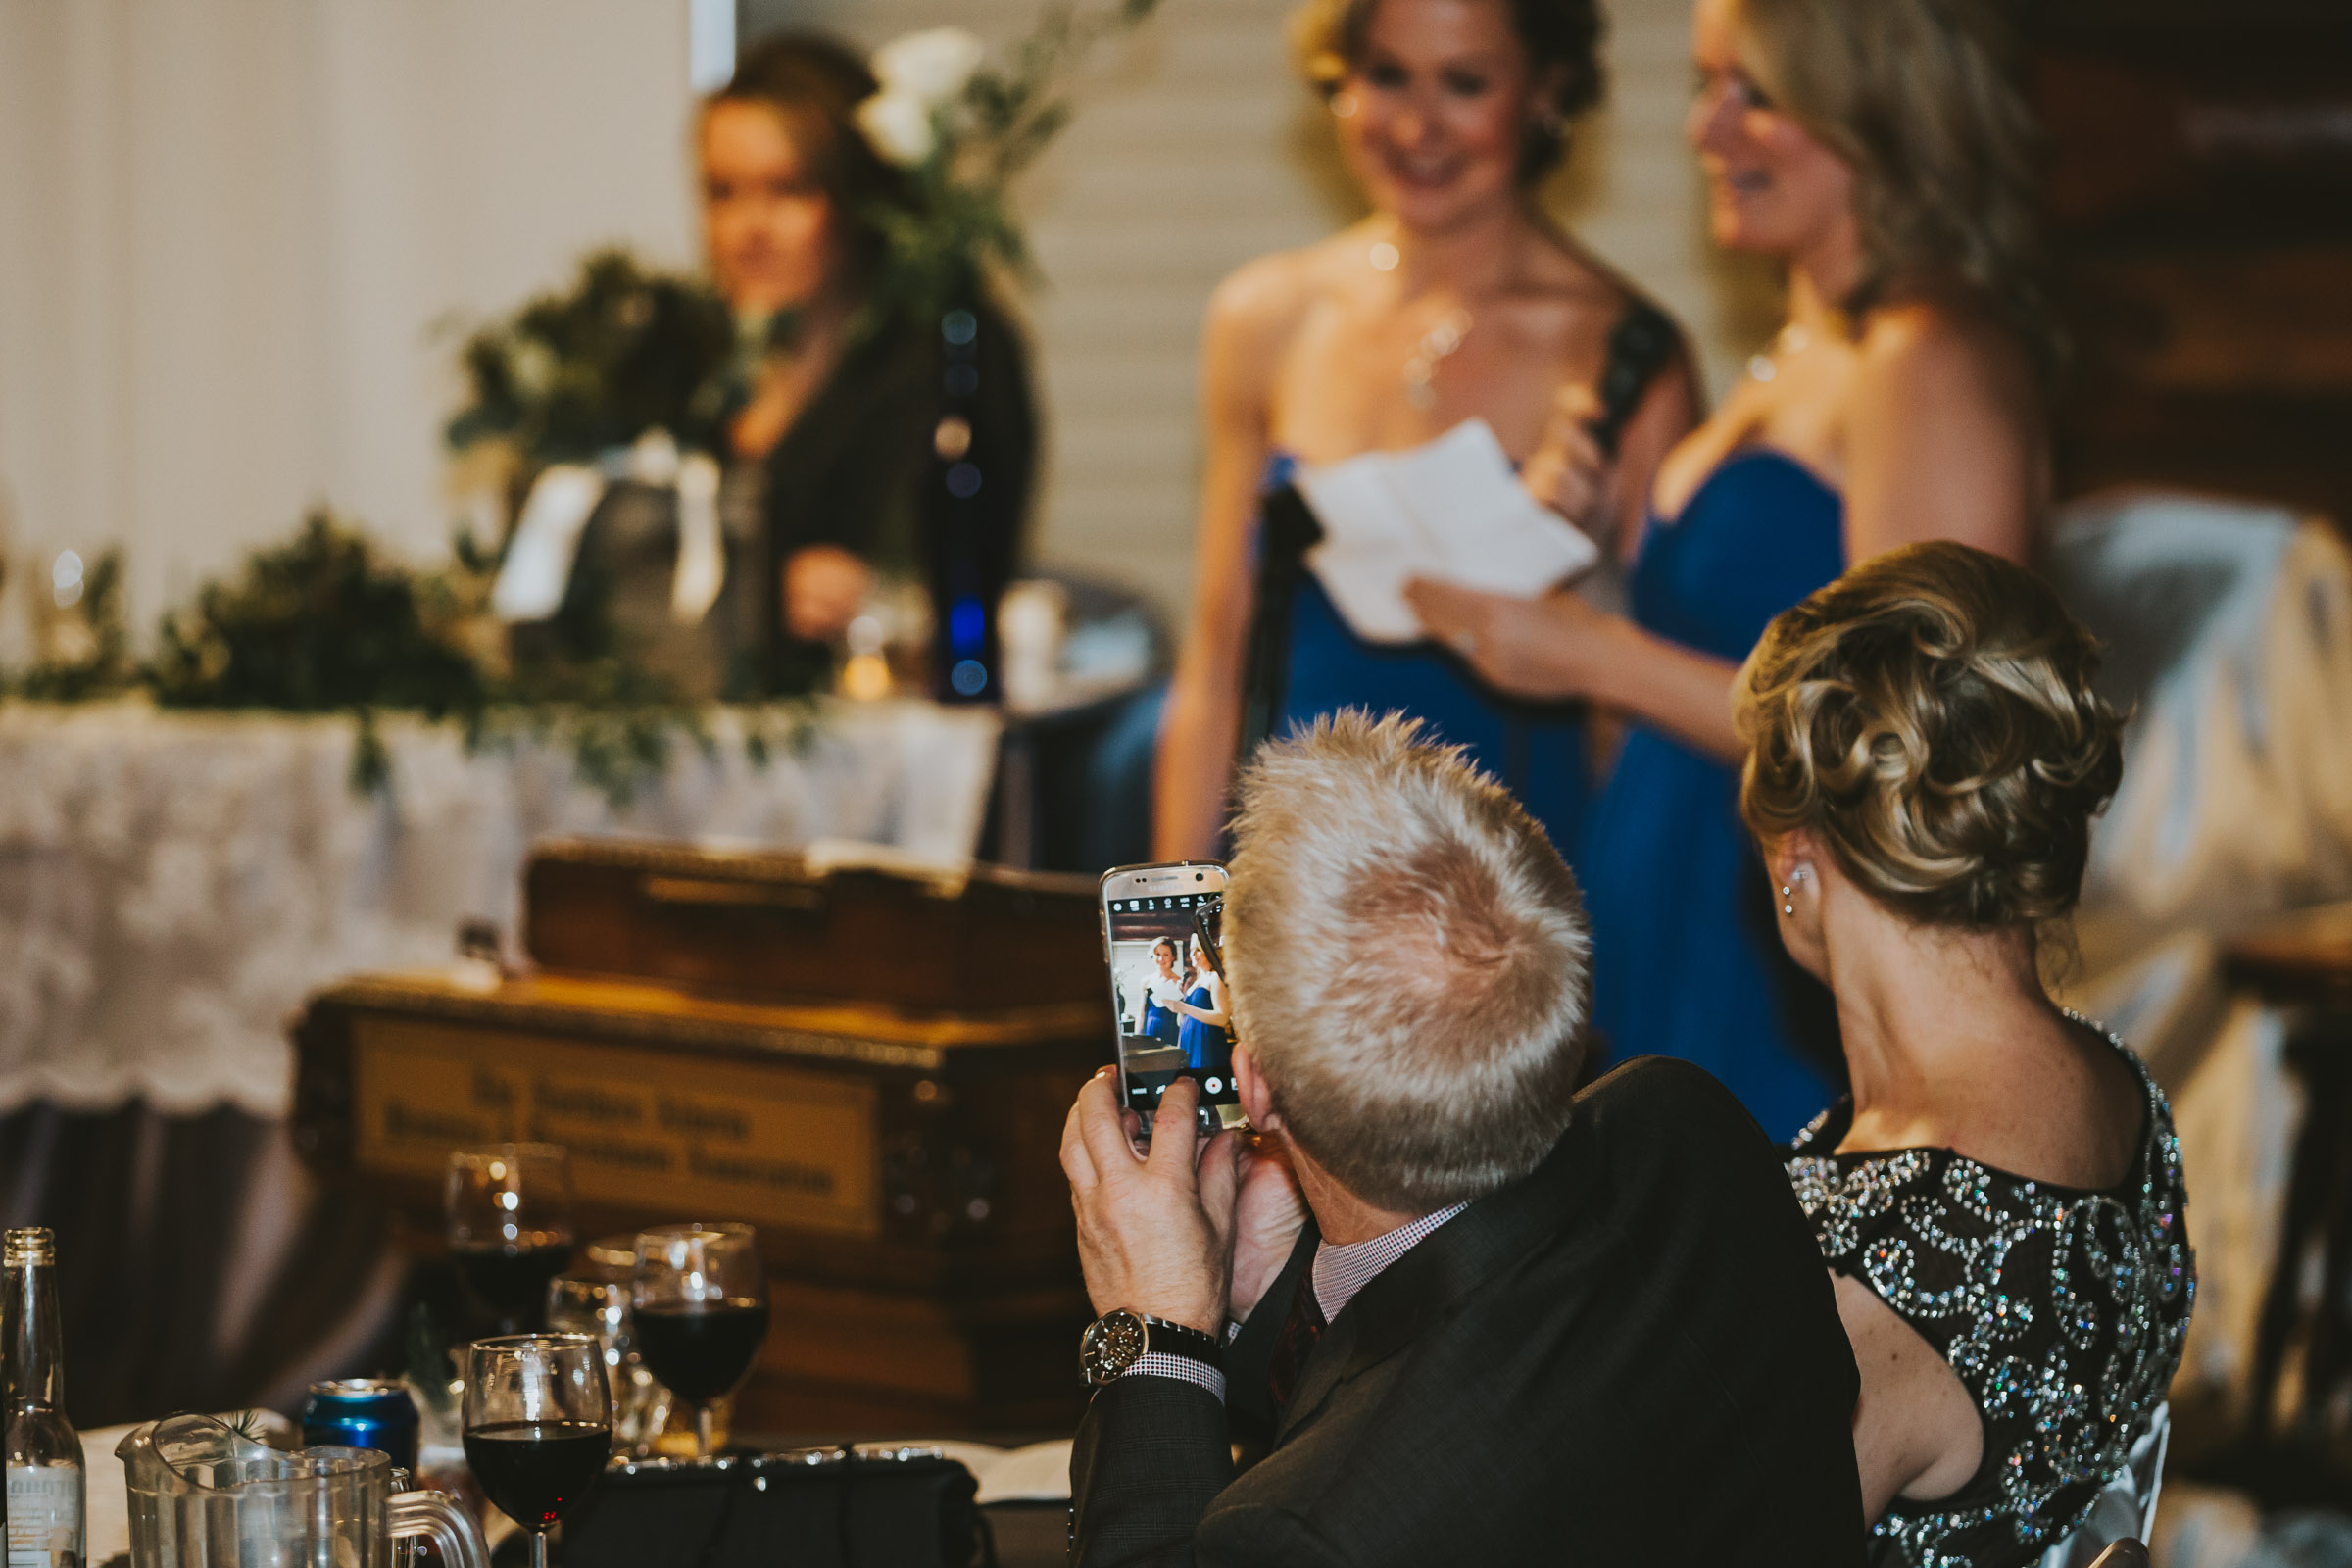 Schrumannwedding__MGL6066_dec102016.jpg